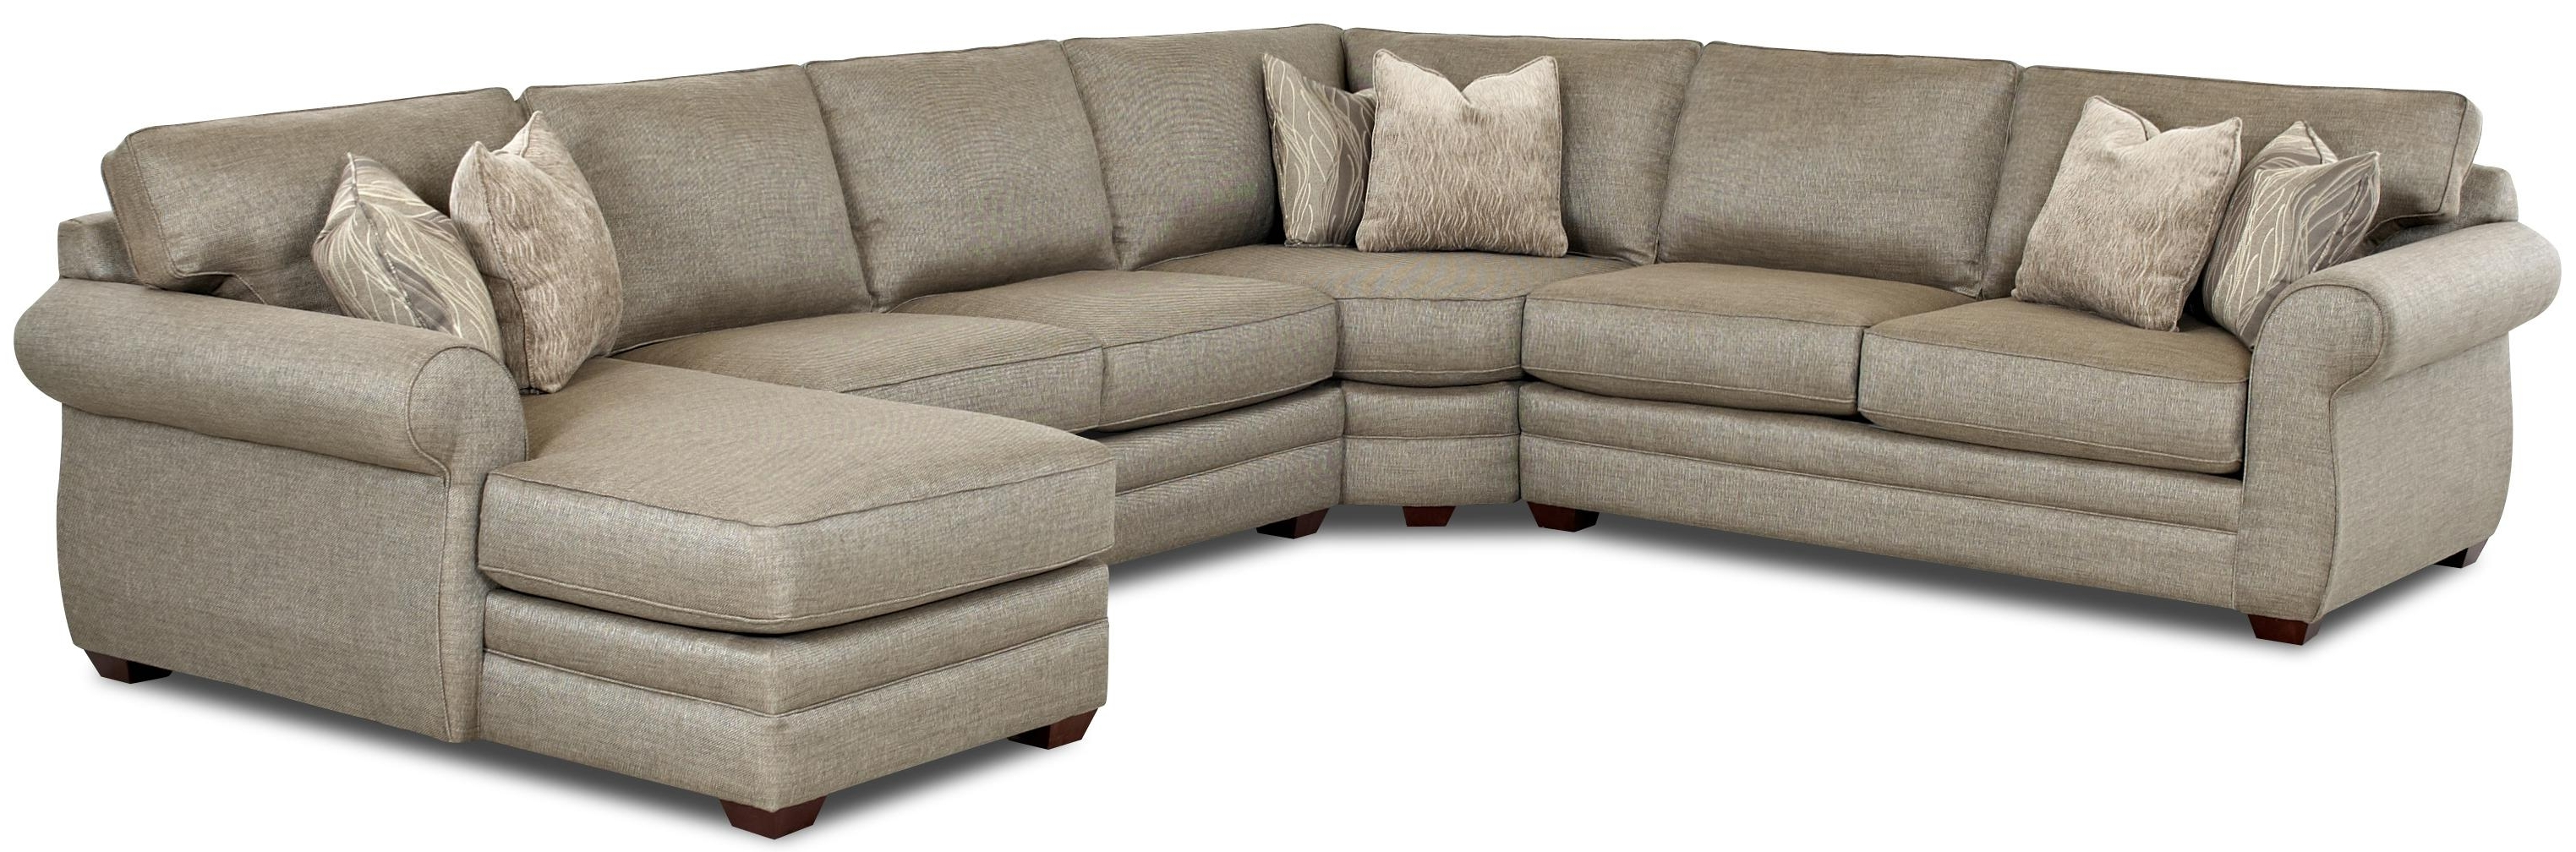 Killeen Tx Sectional Sofas In Most Popular Klaussner Clanton Transitional Sectional Sofa With Right Chaise (View 14 of 15)